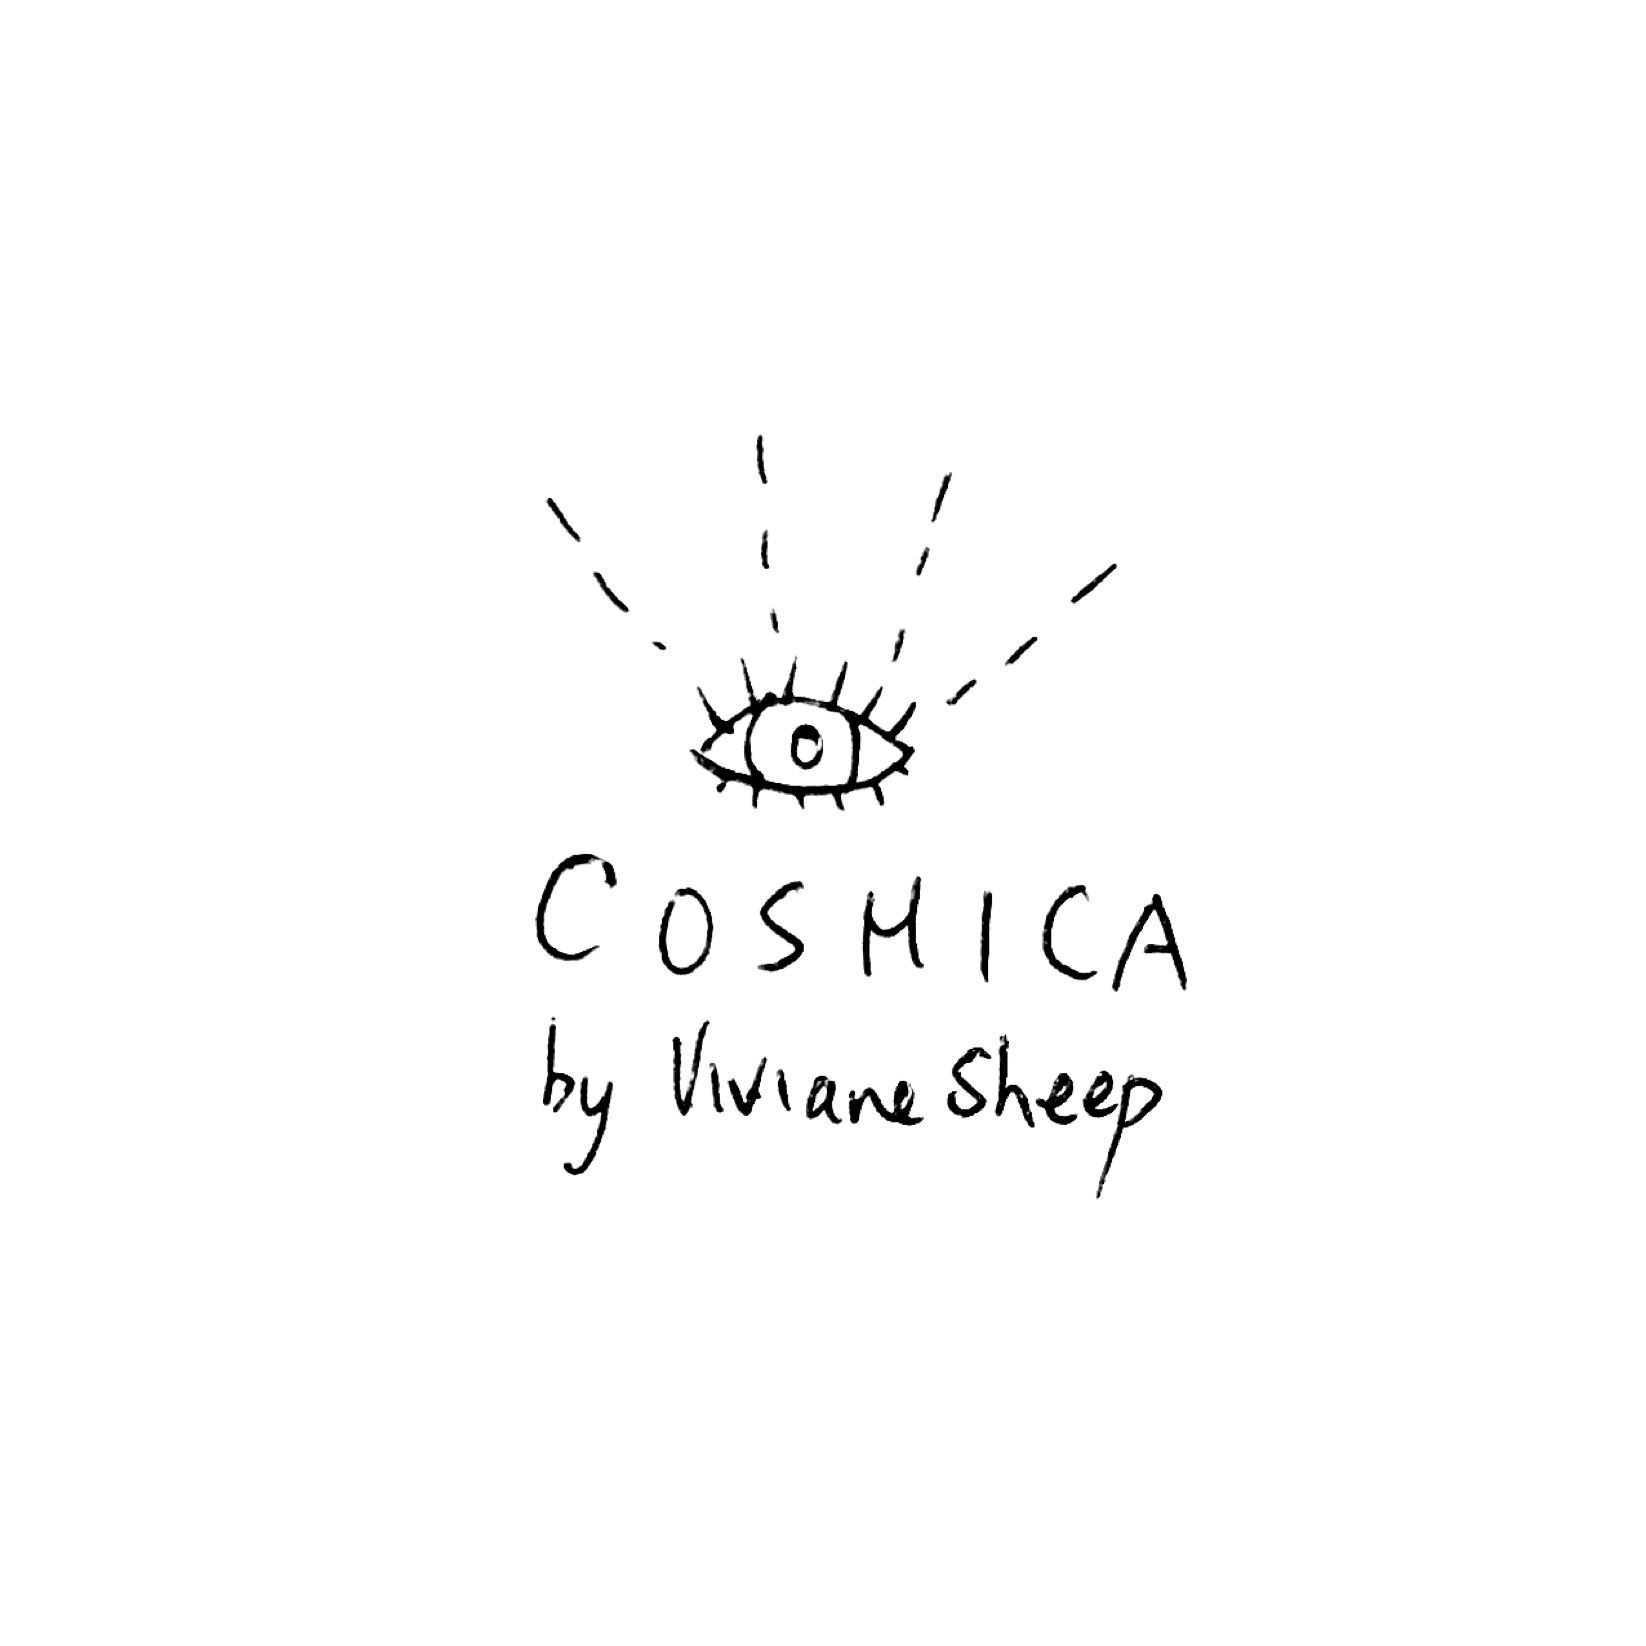 COSMICA by Viviane Sheep